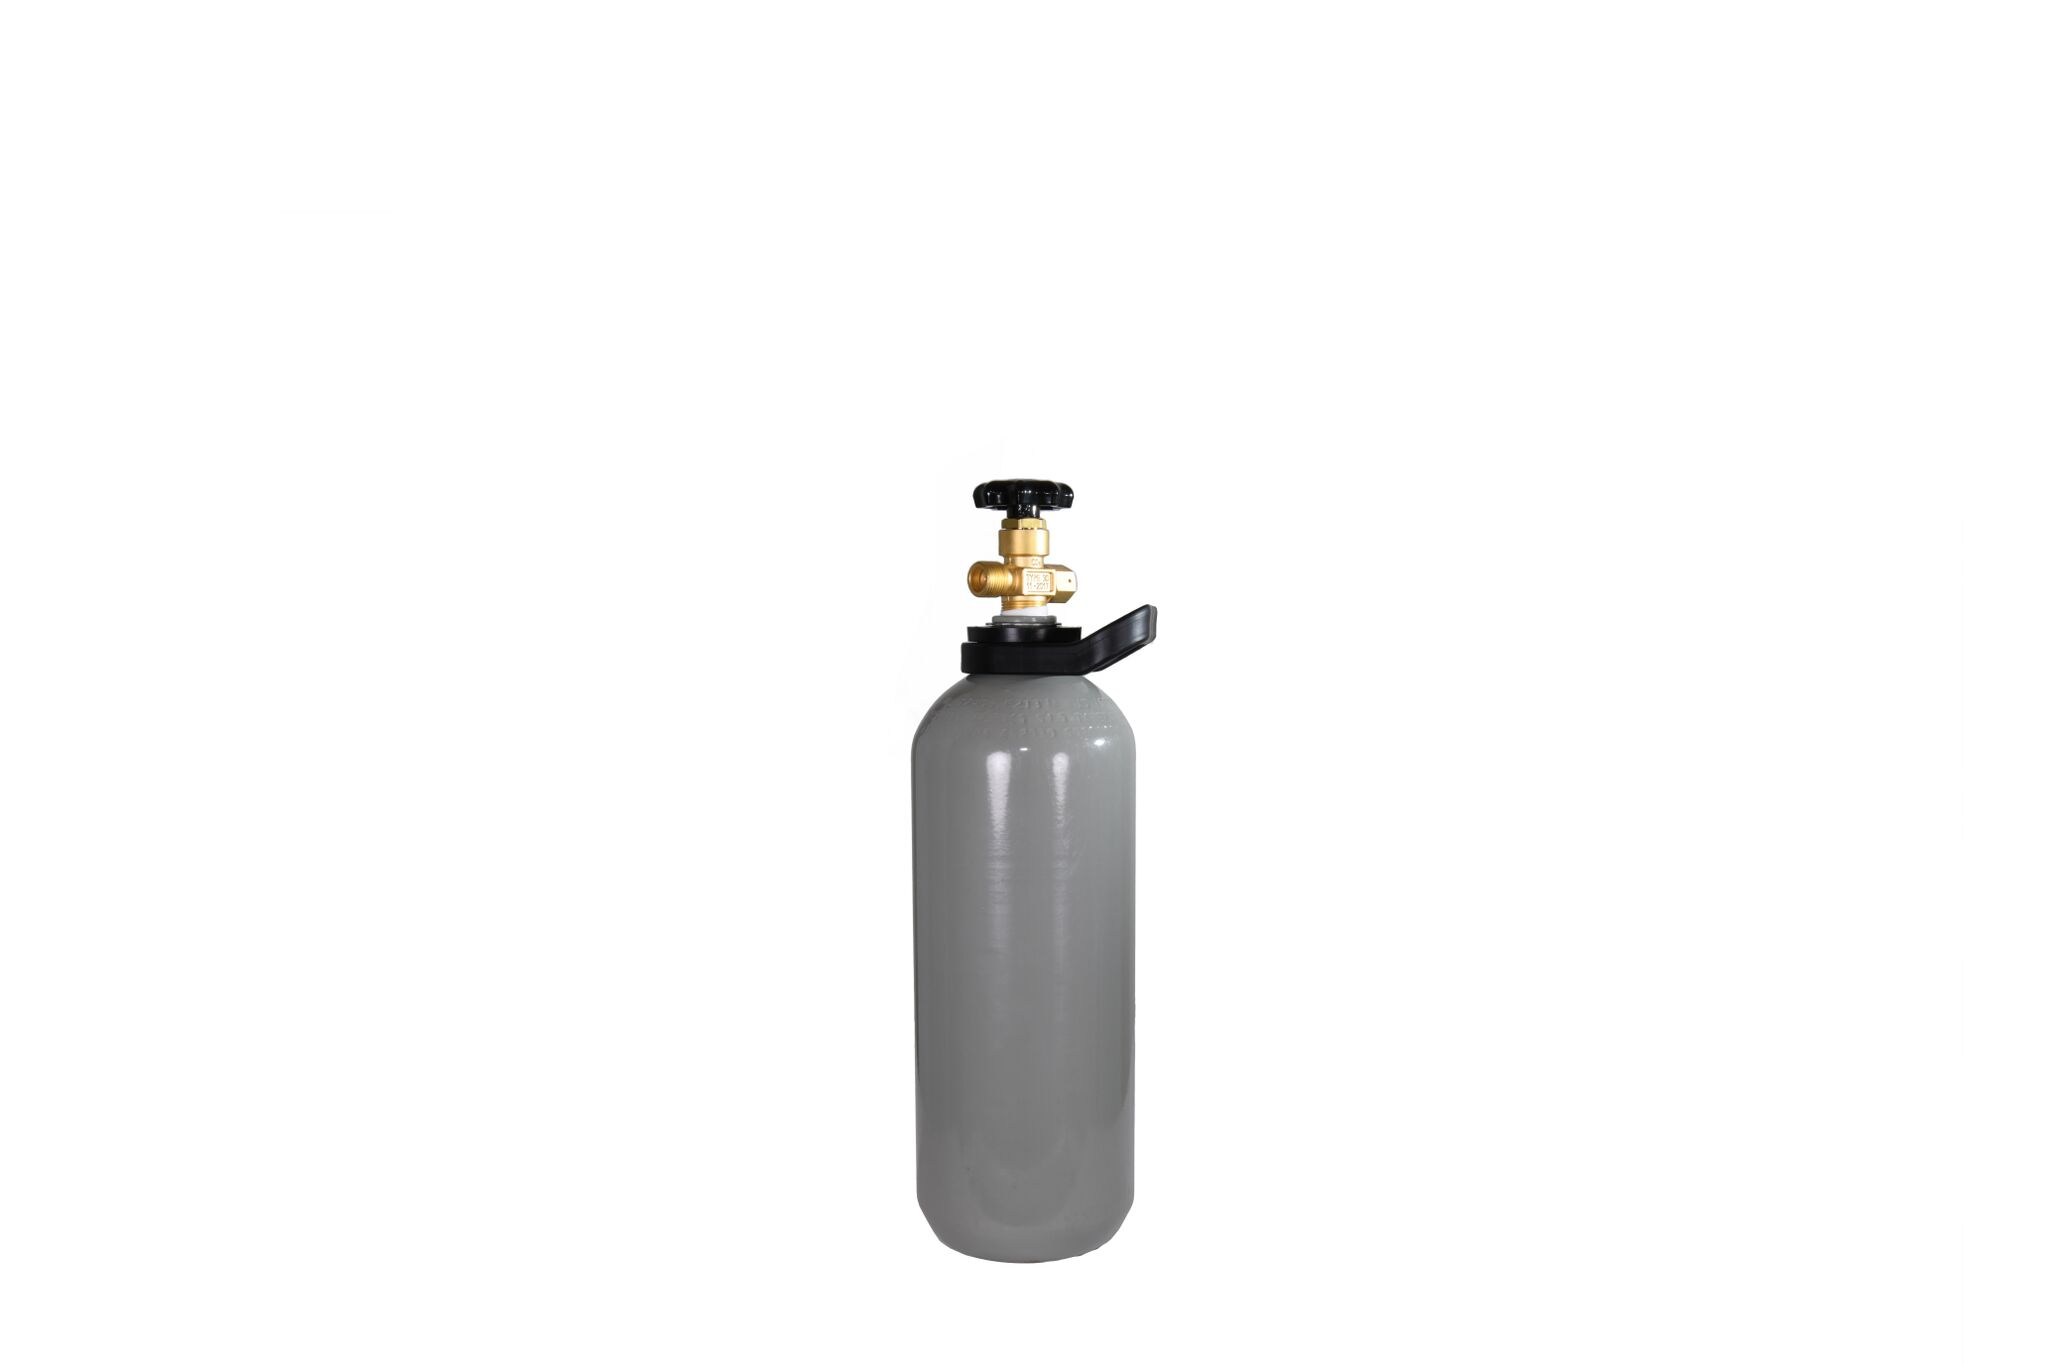 2.6kg Refillable C02 Cylinder (Full)